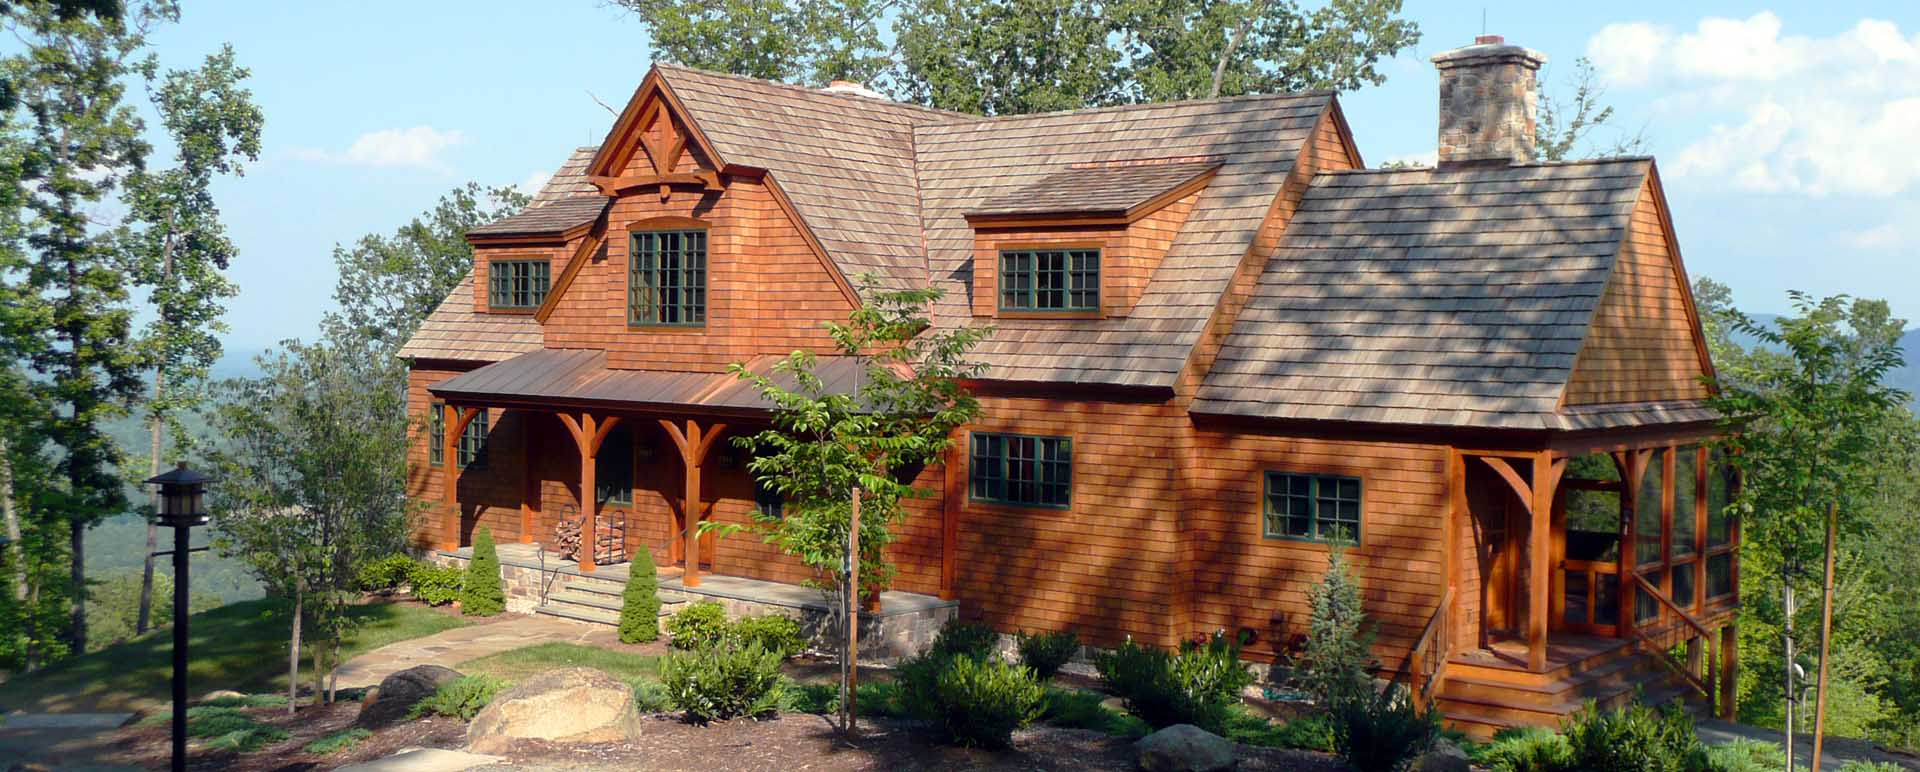 Timber Frame Homes Post And Beam Plans Timberpeg - Timber frame homes plans